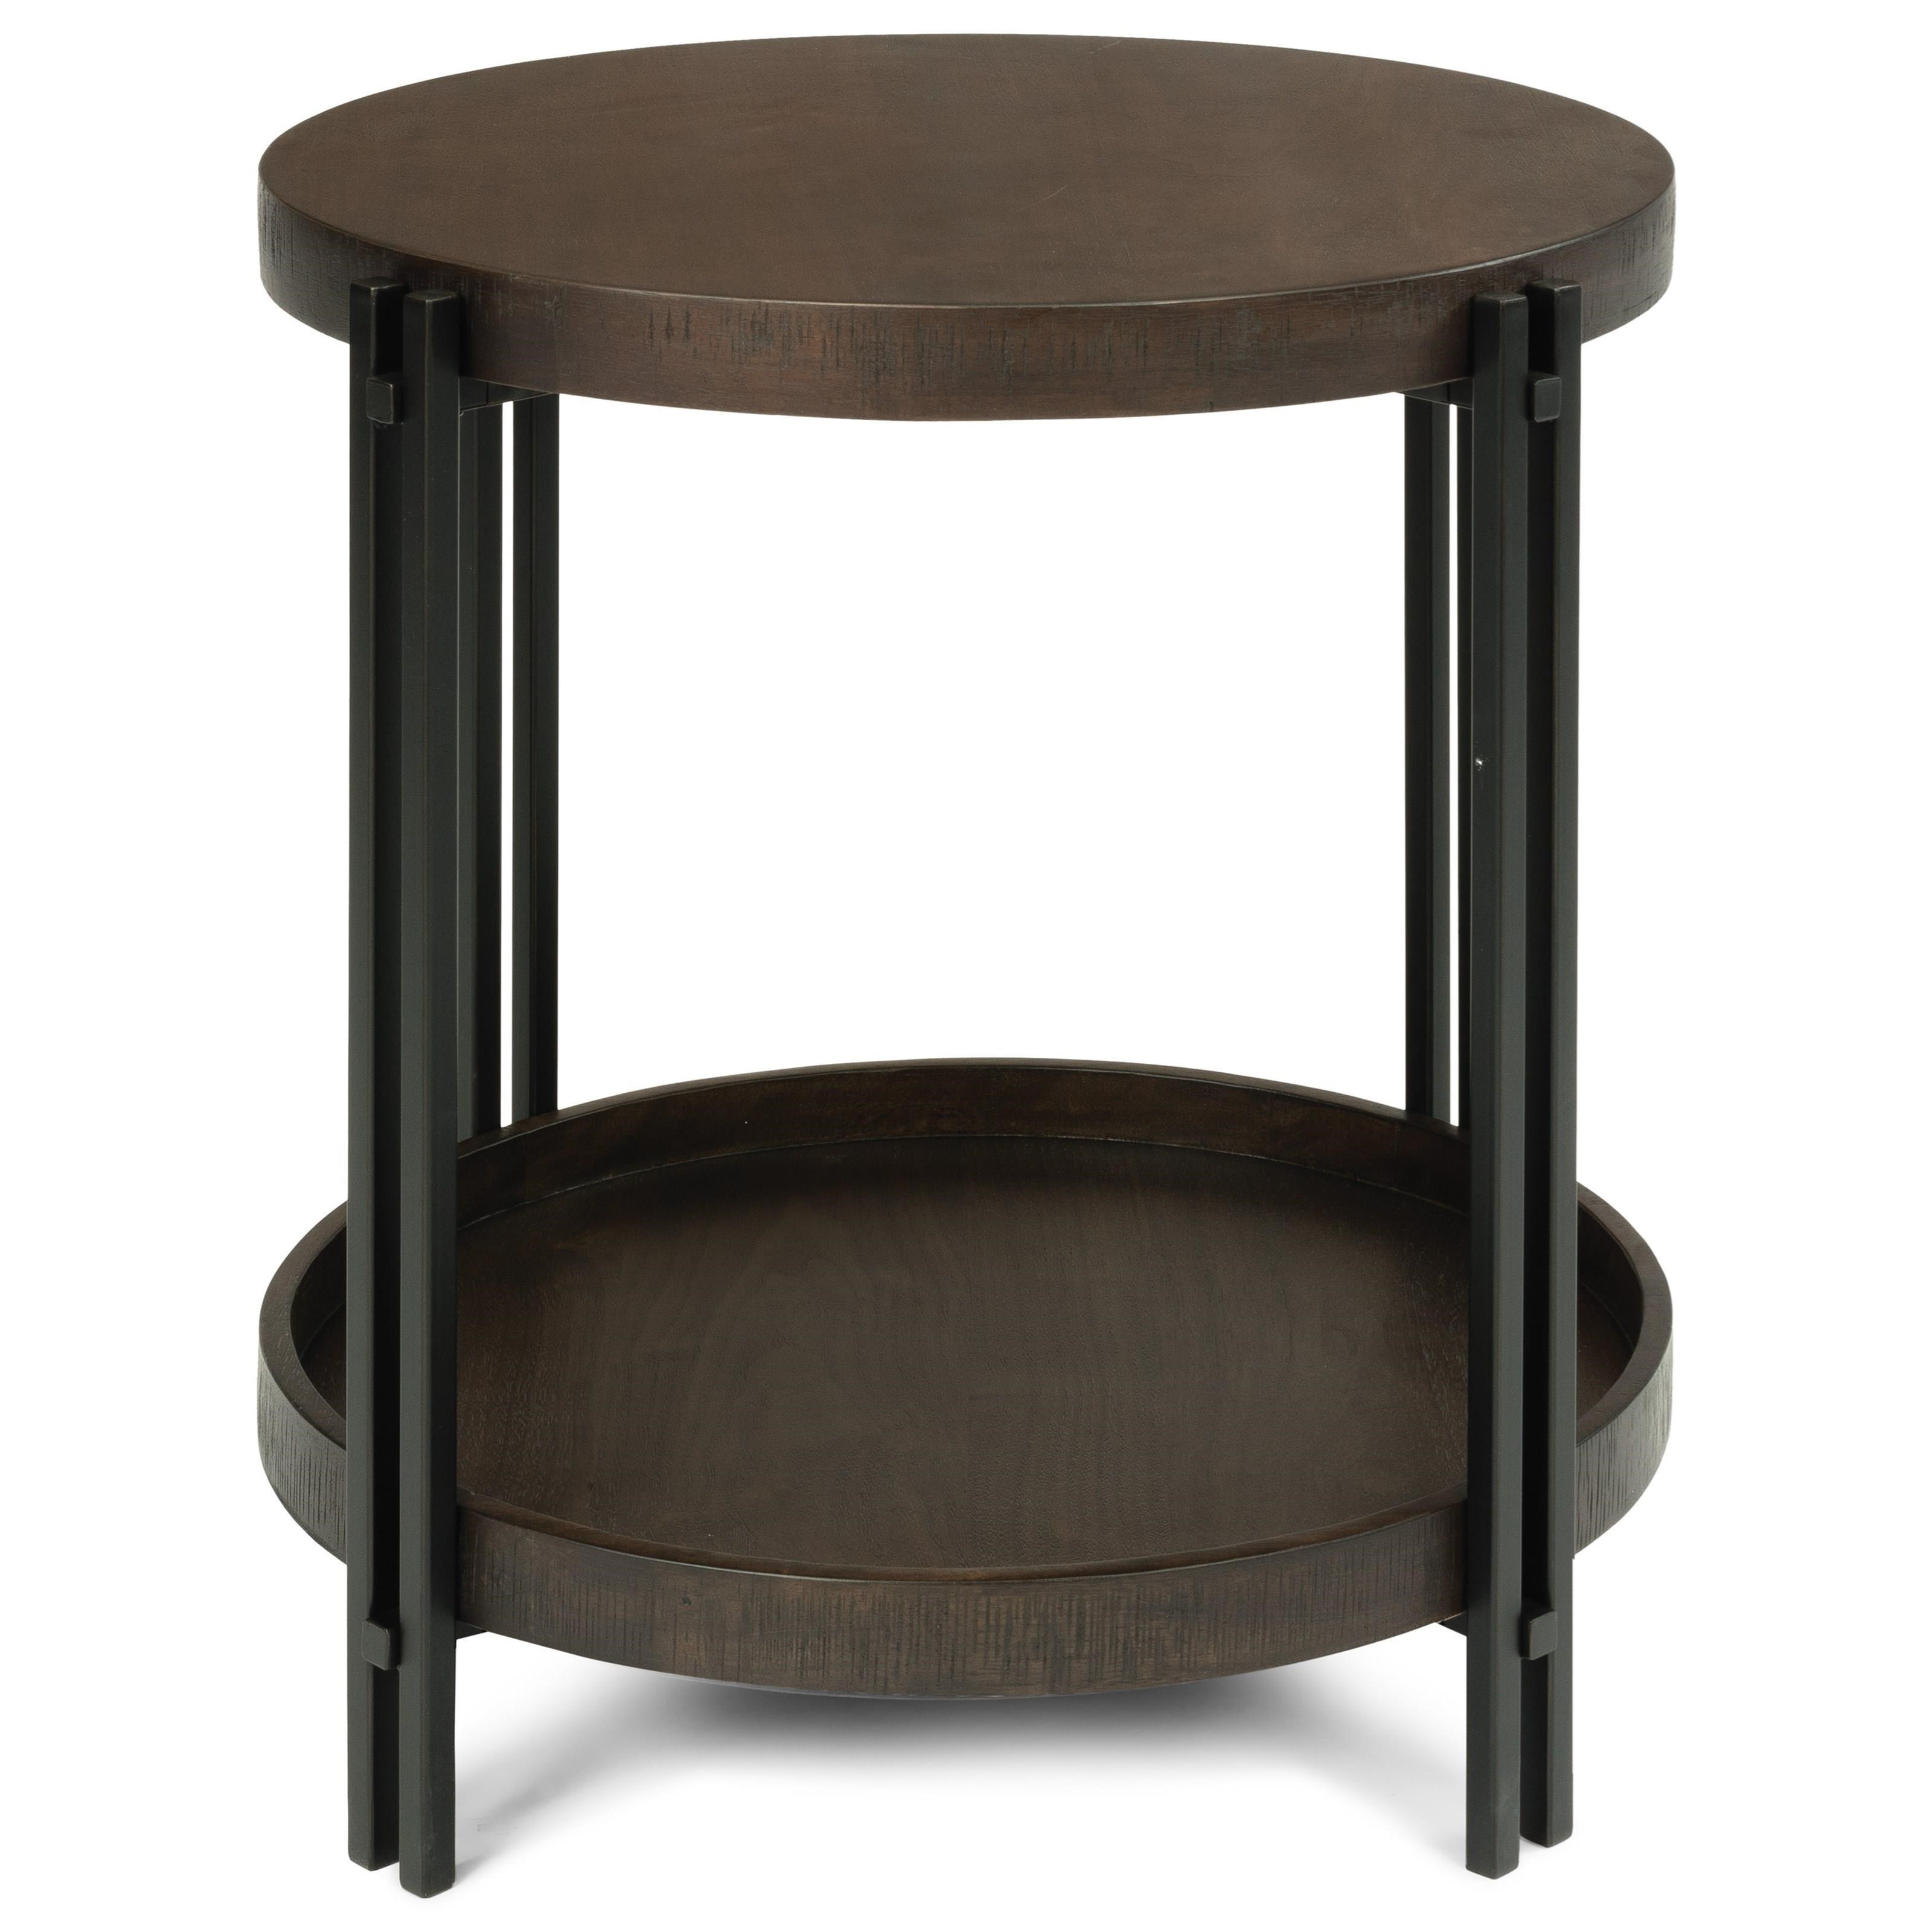 Prairie Round End Table  by Flexsteel Wynwood Collection at Northeast Factory Direct